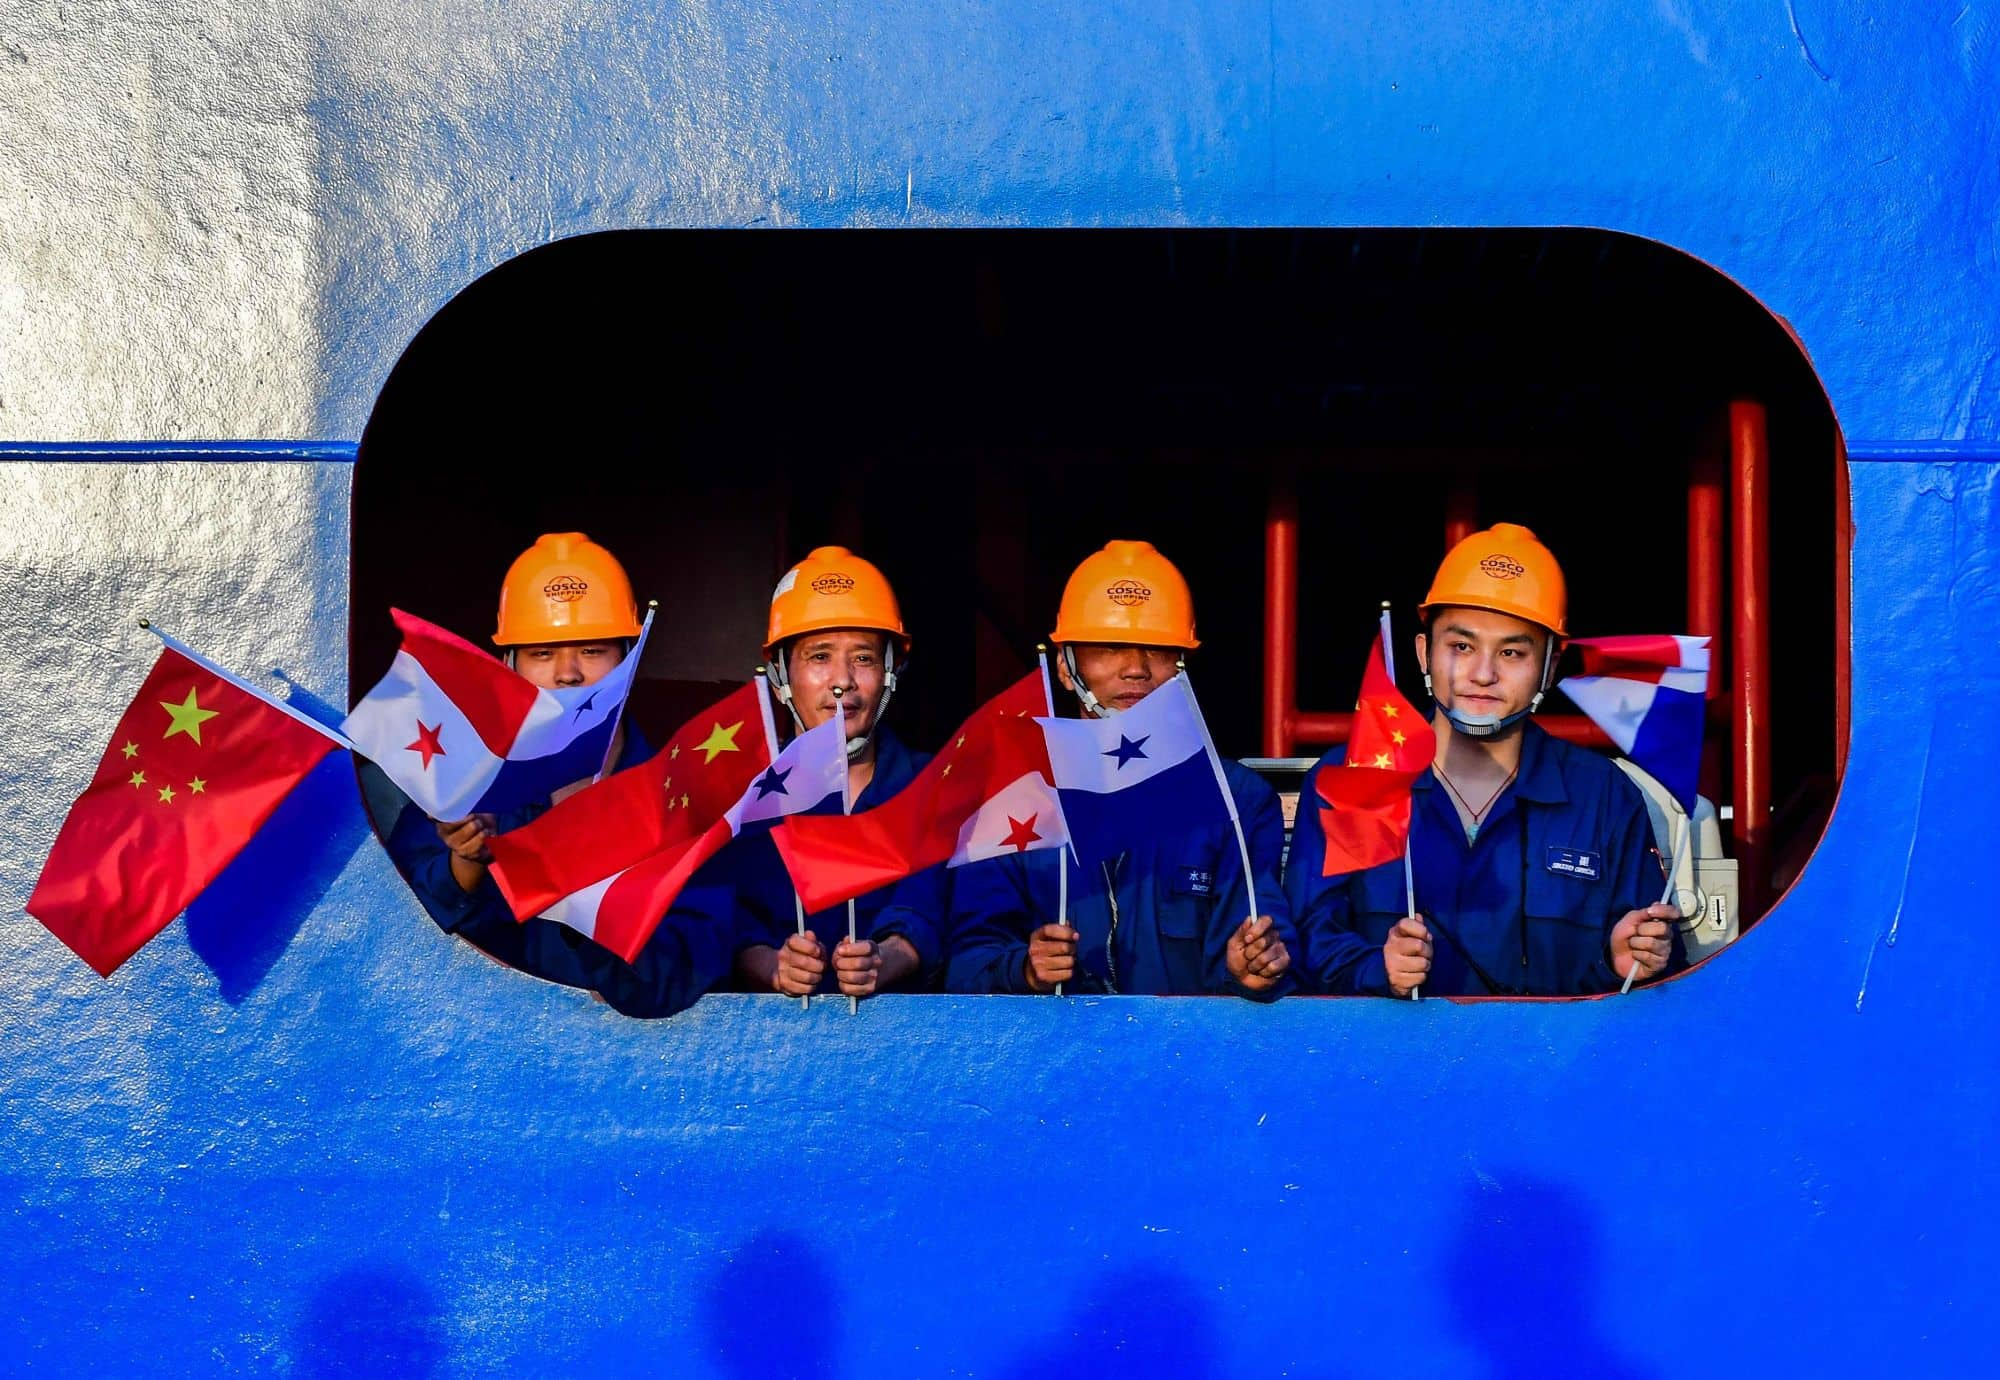 Crew members of a Chinese container ship wave Chinese and Panamanian flags during an official visit by Chinese President Xi Jinping to the country in December 2018.